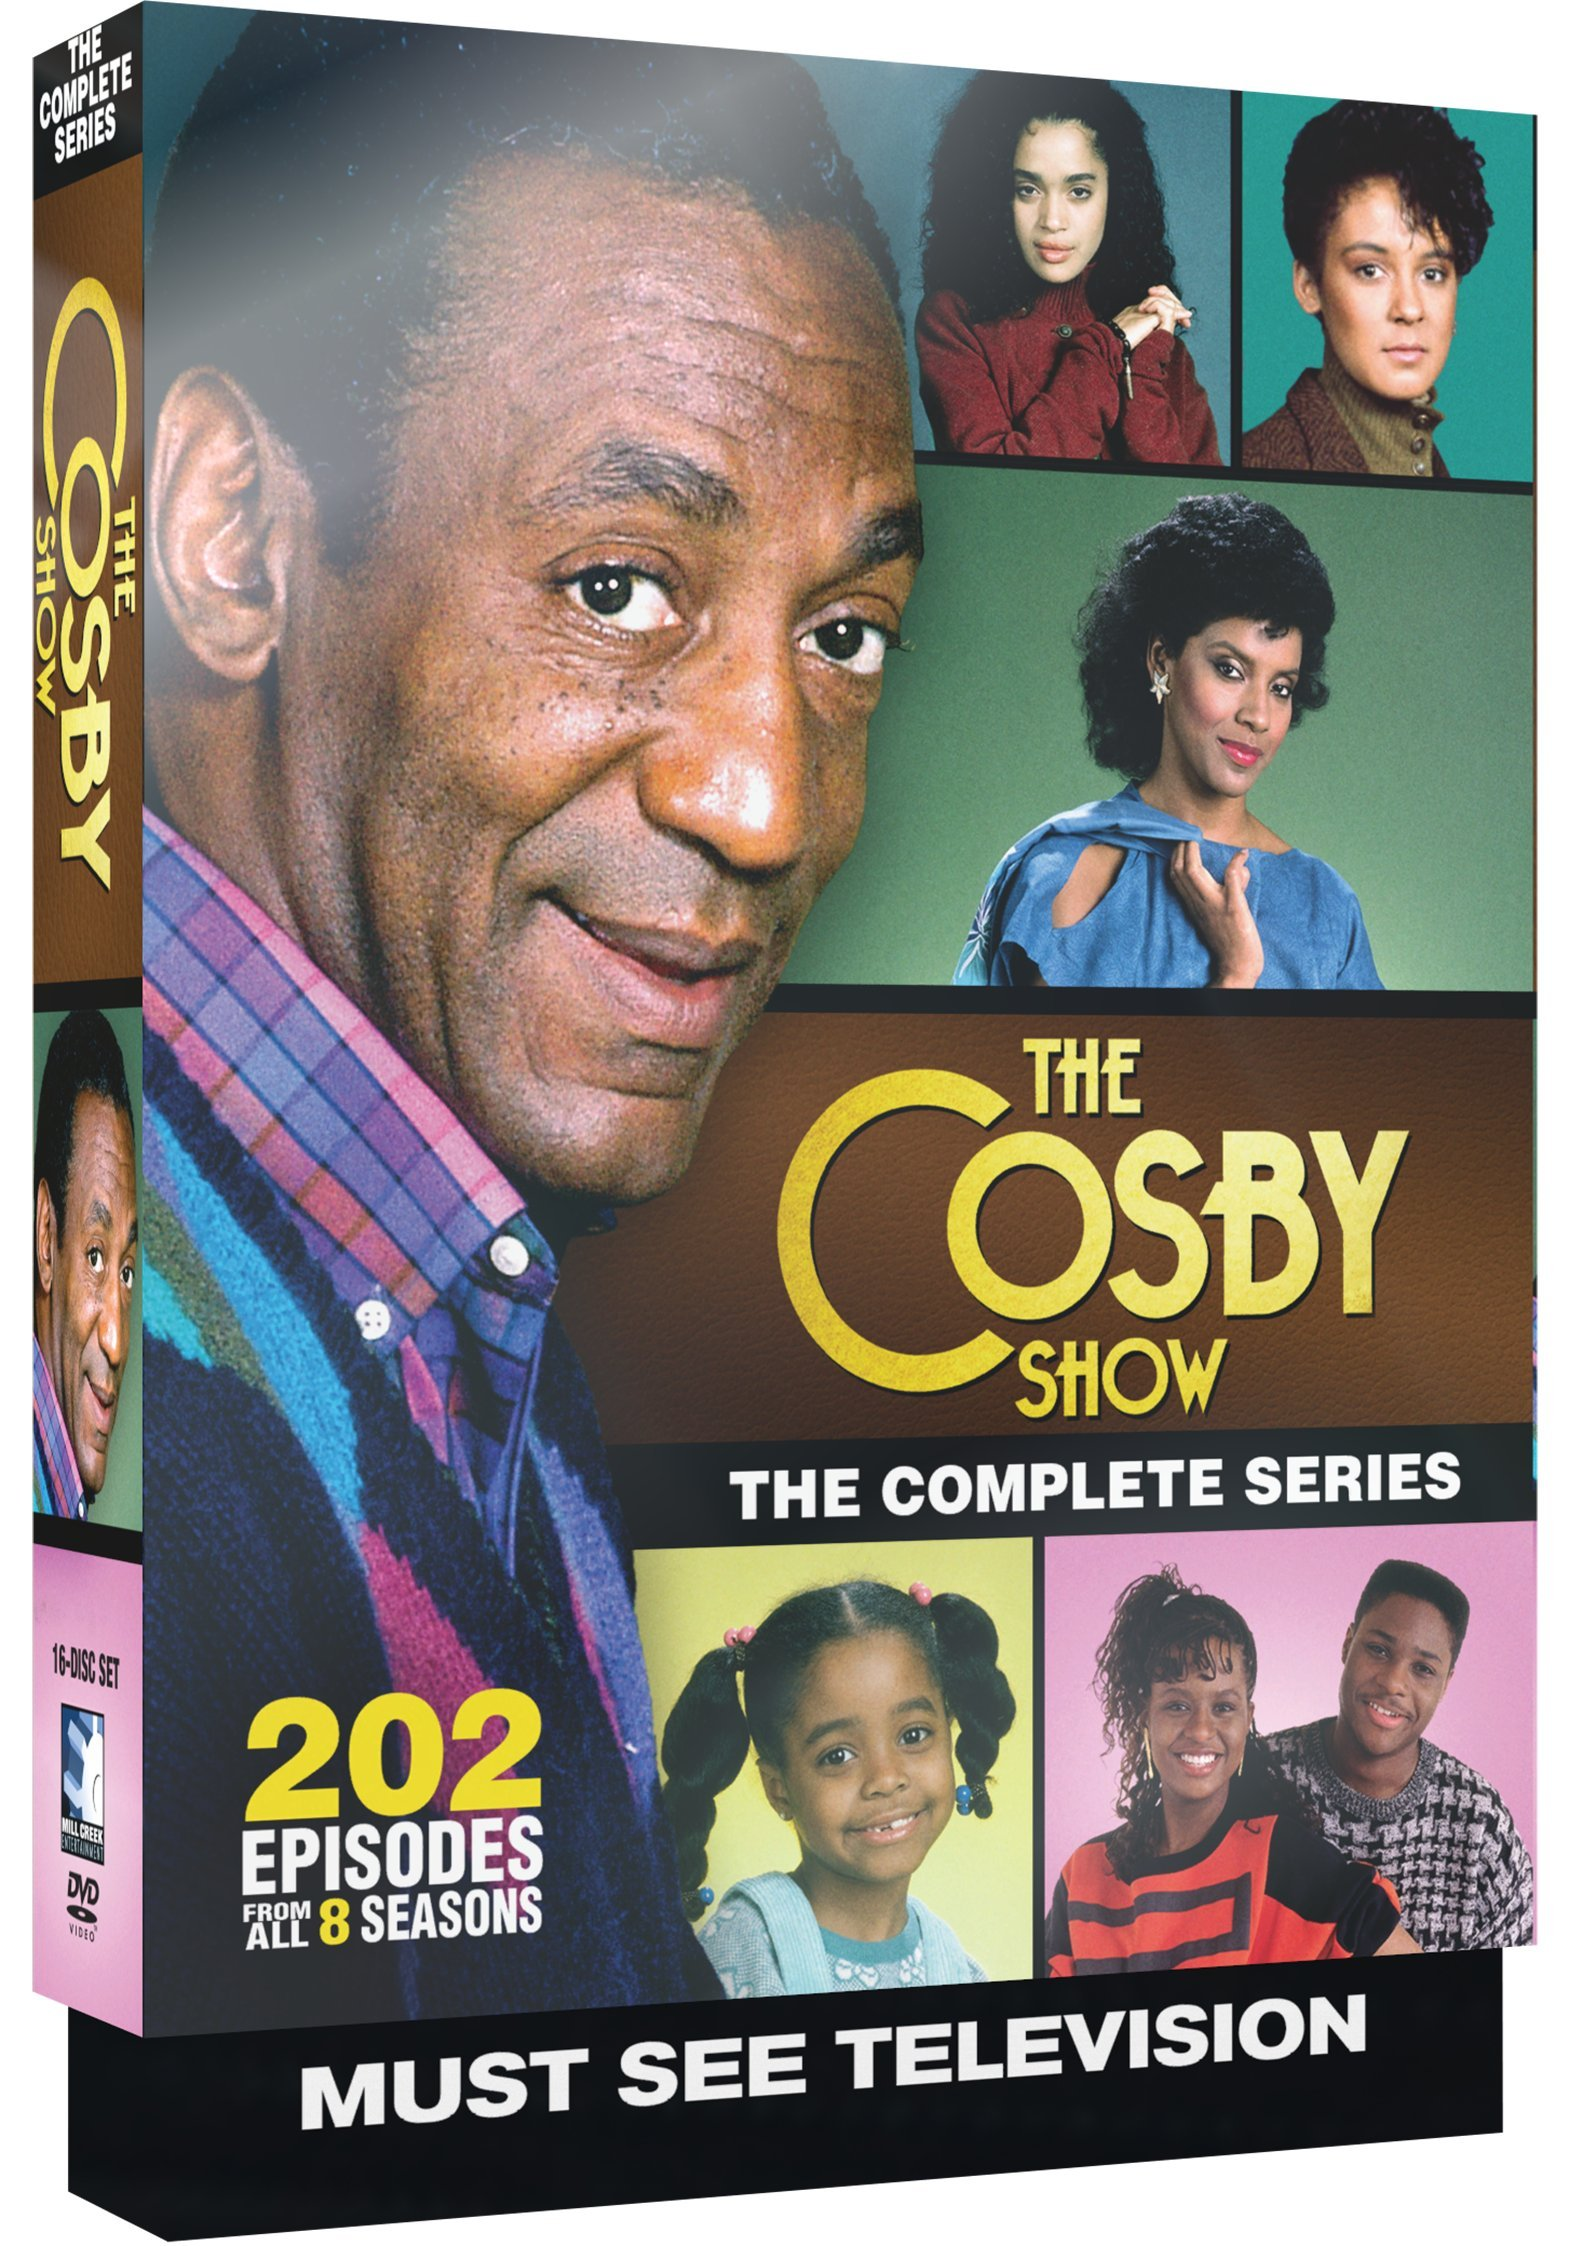 The Cosby Show - The Complete Series